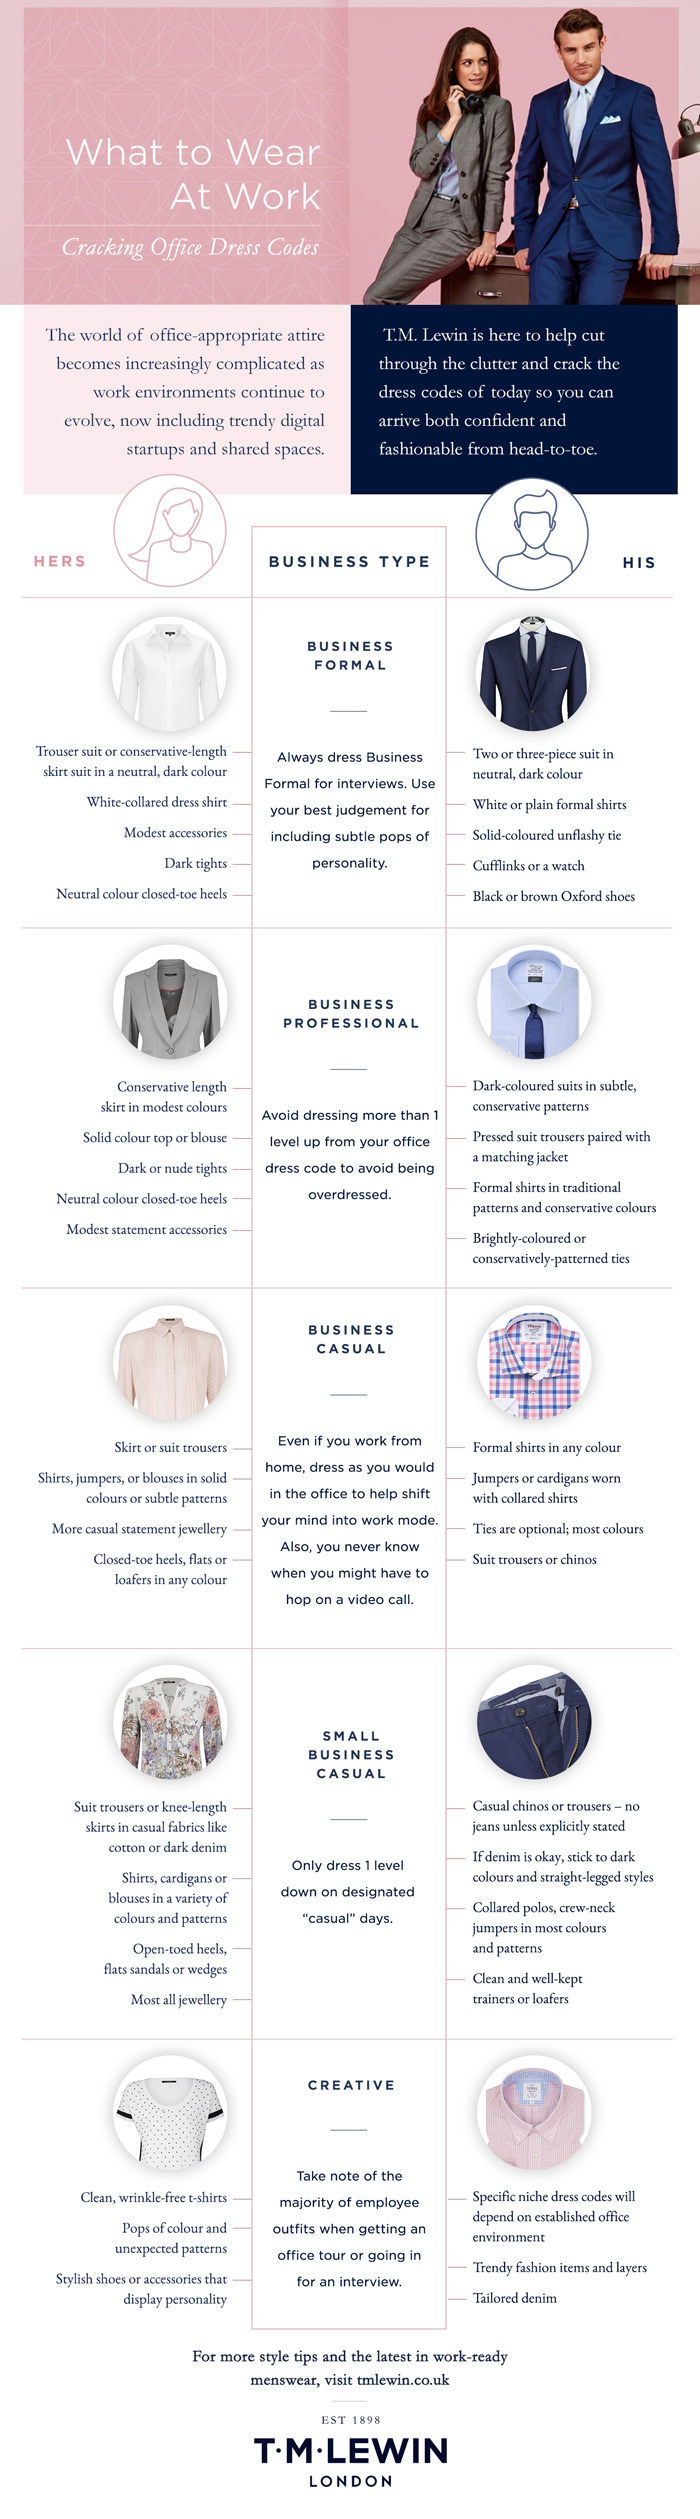 Infographic regarding clothing choices for work.